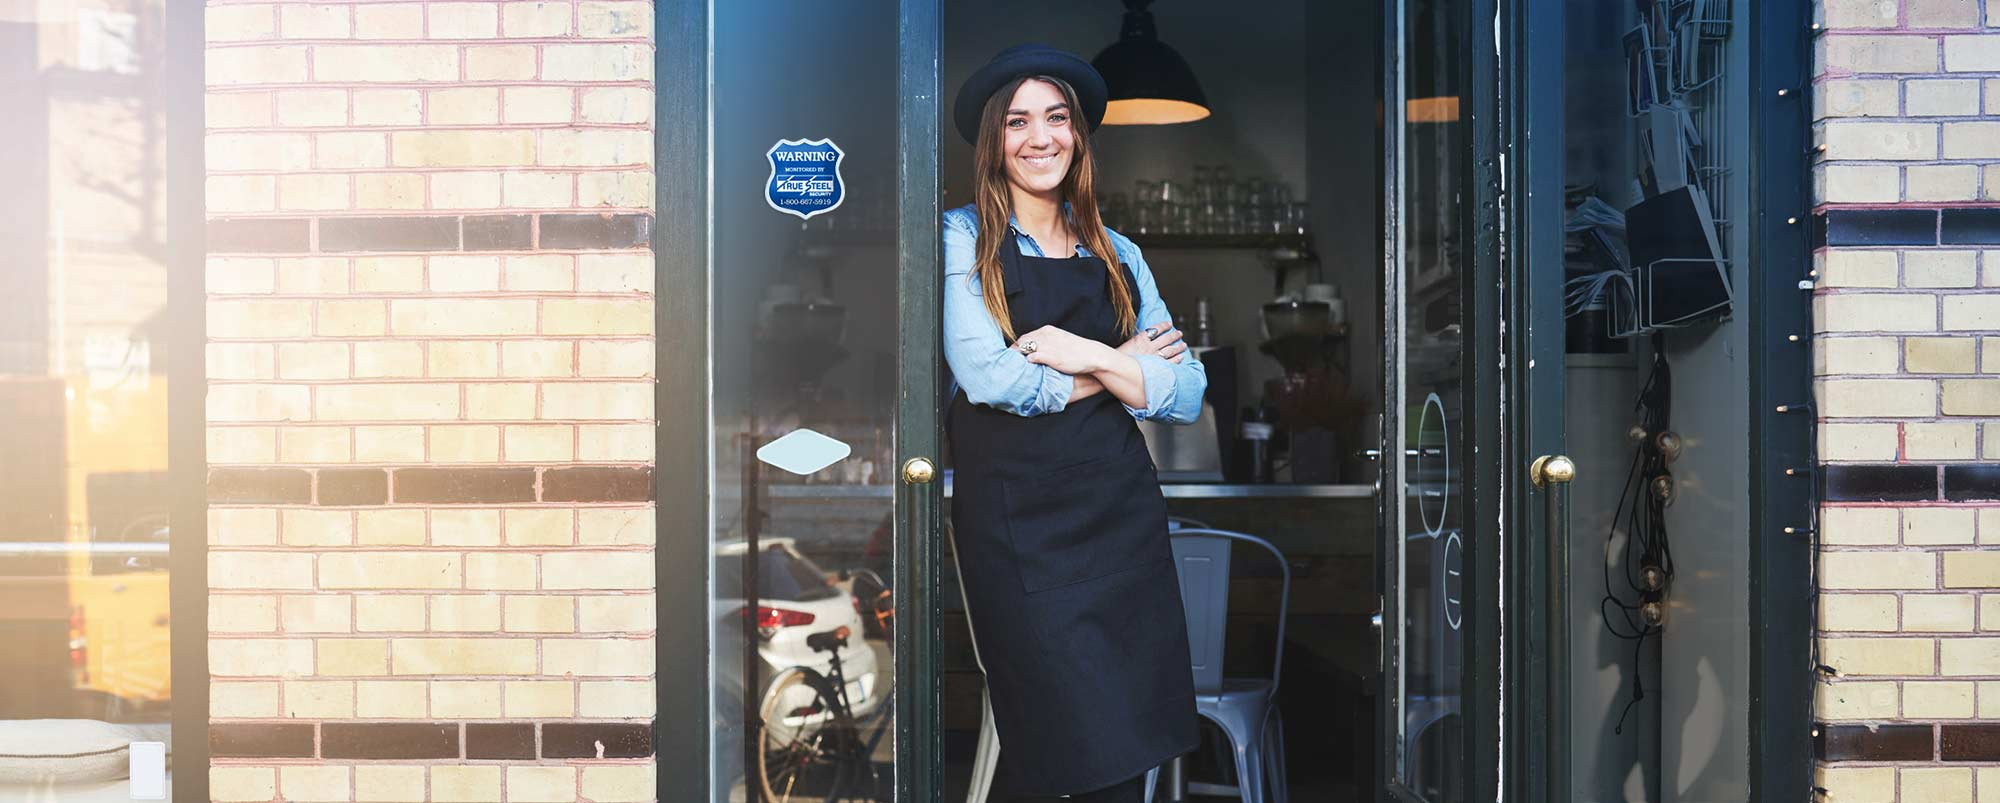 business storefront commercial buyers guide